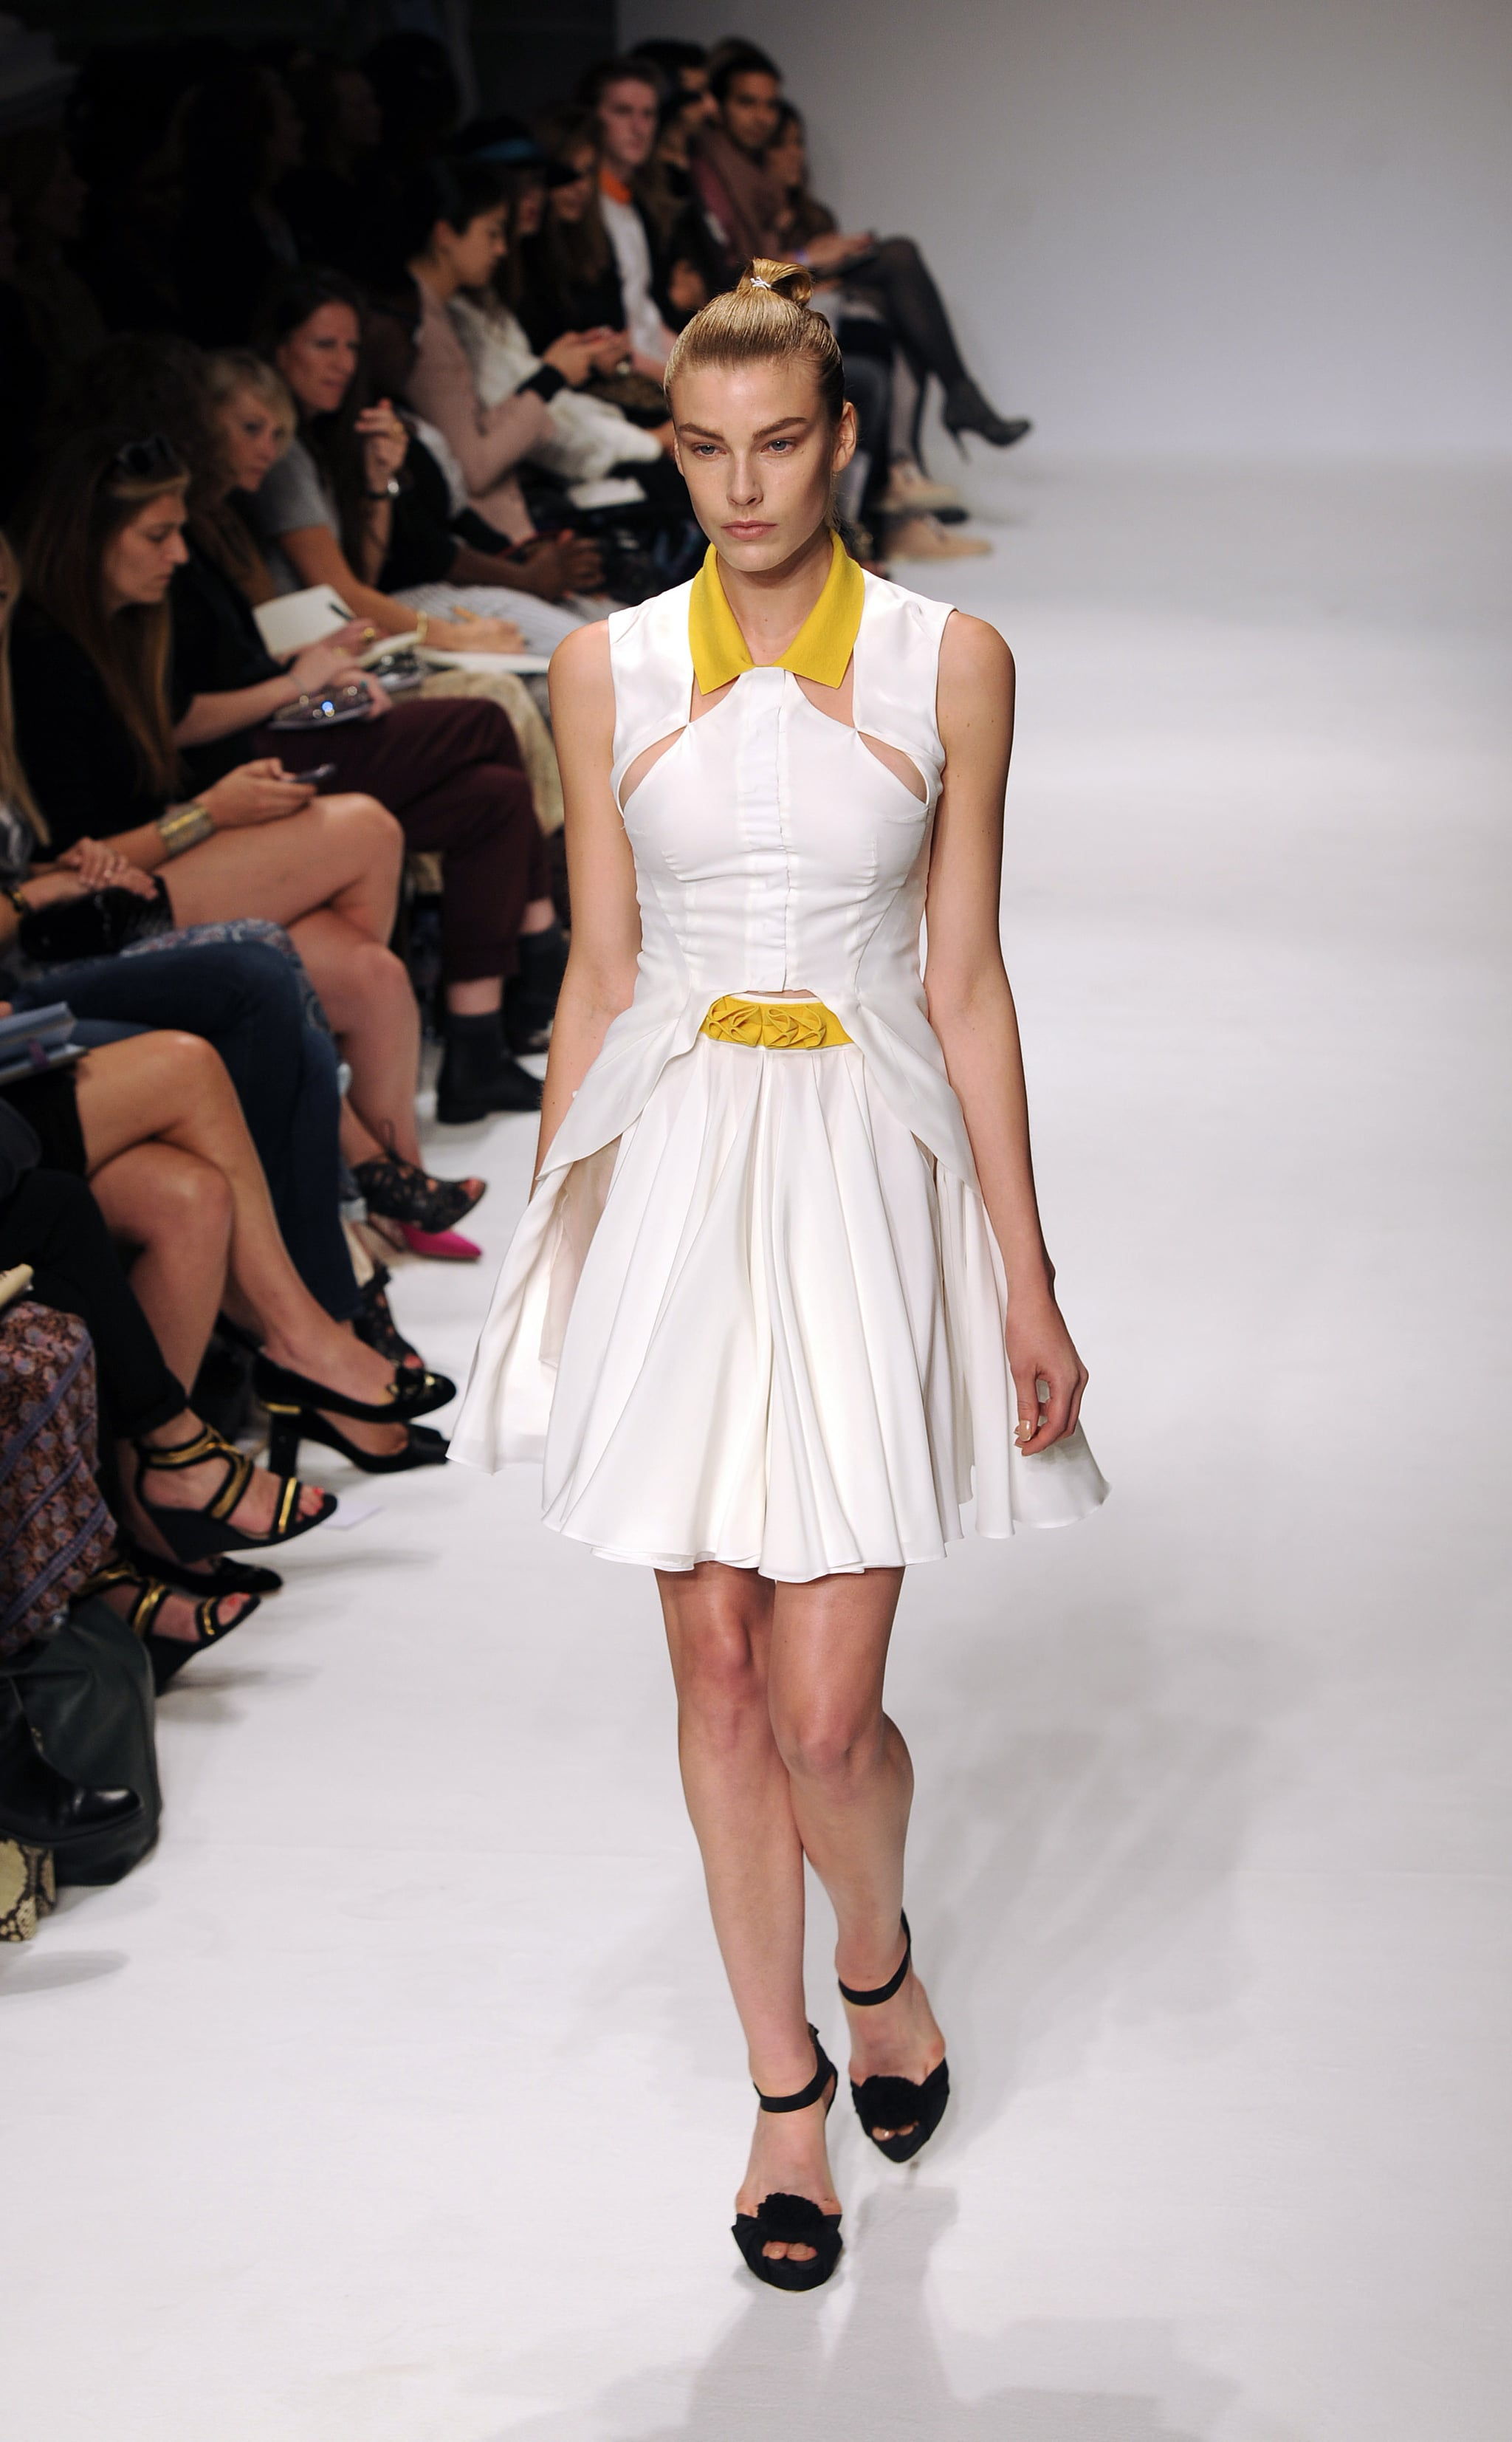 Lou spring dalton runway, Morning Good my love in spanish pictures